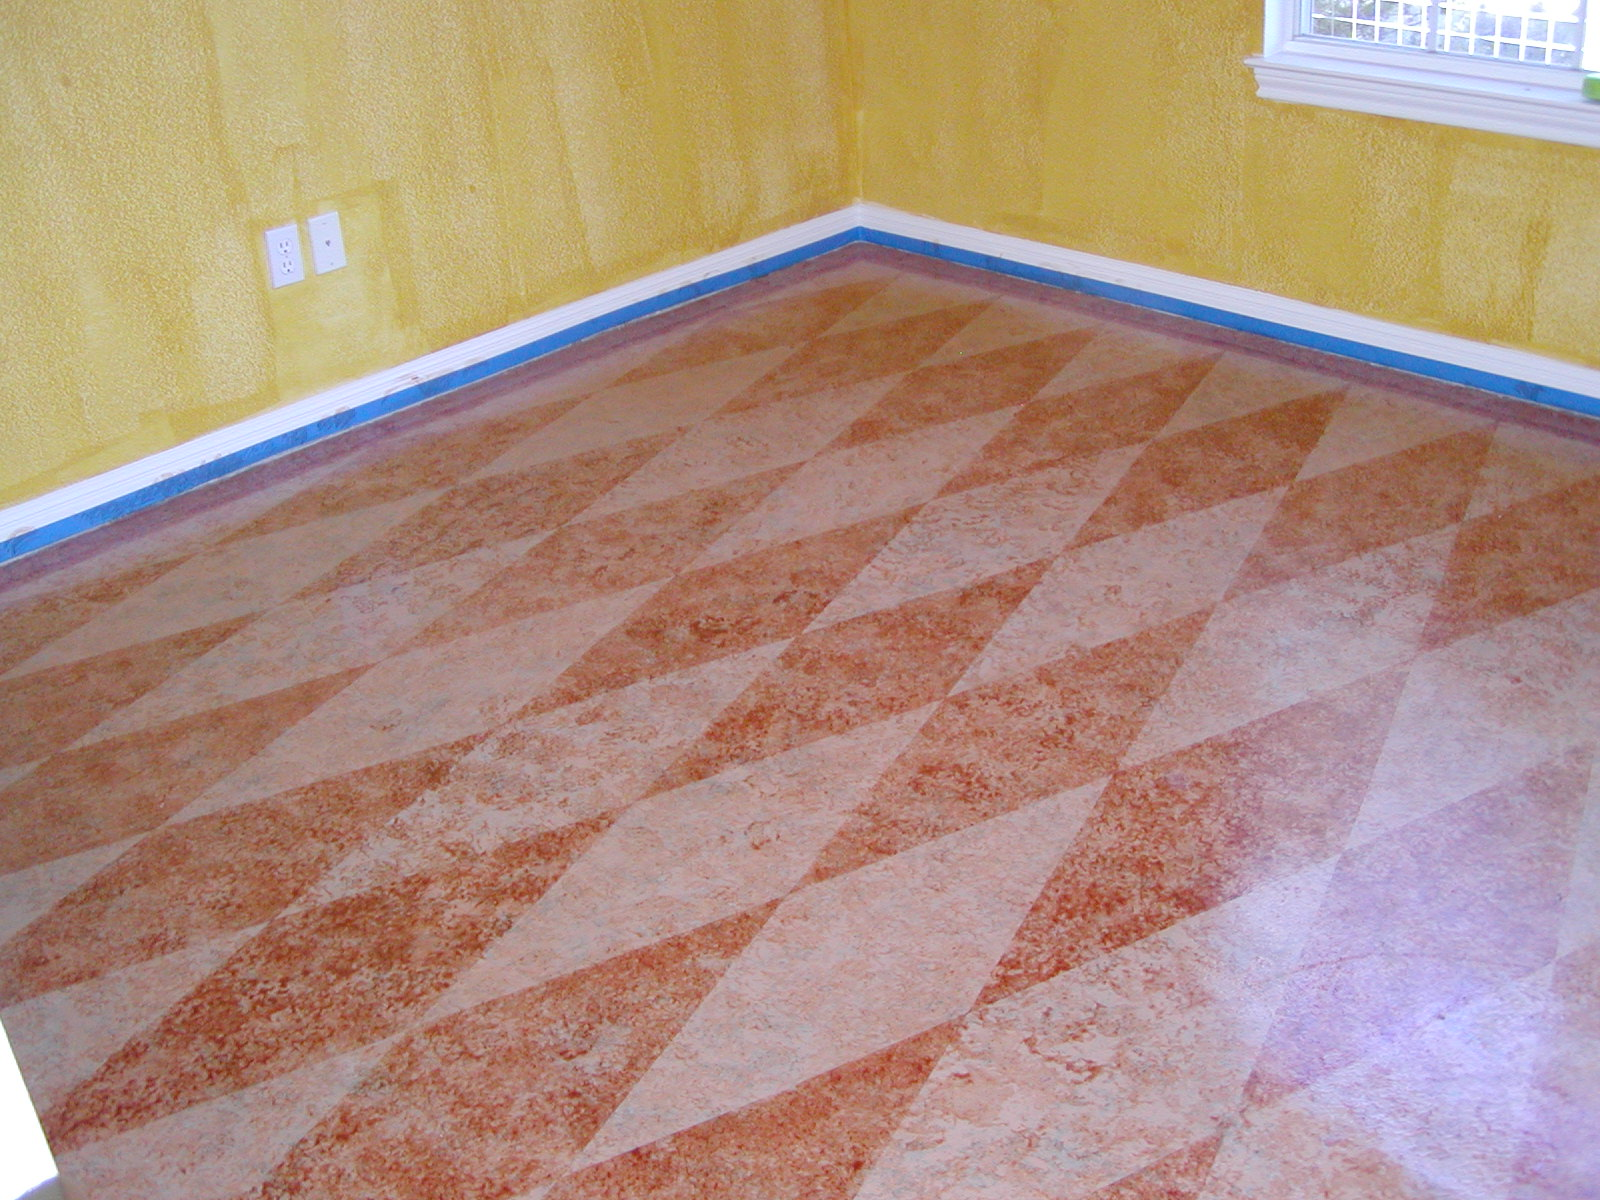 painted concrete floor.jpg